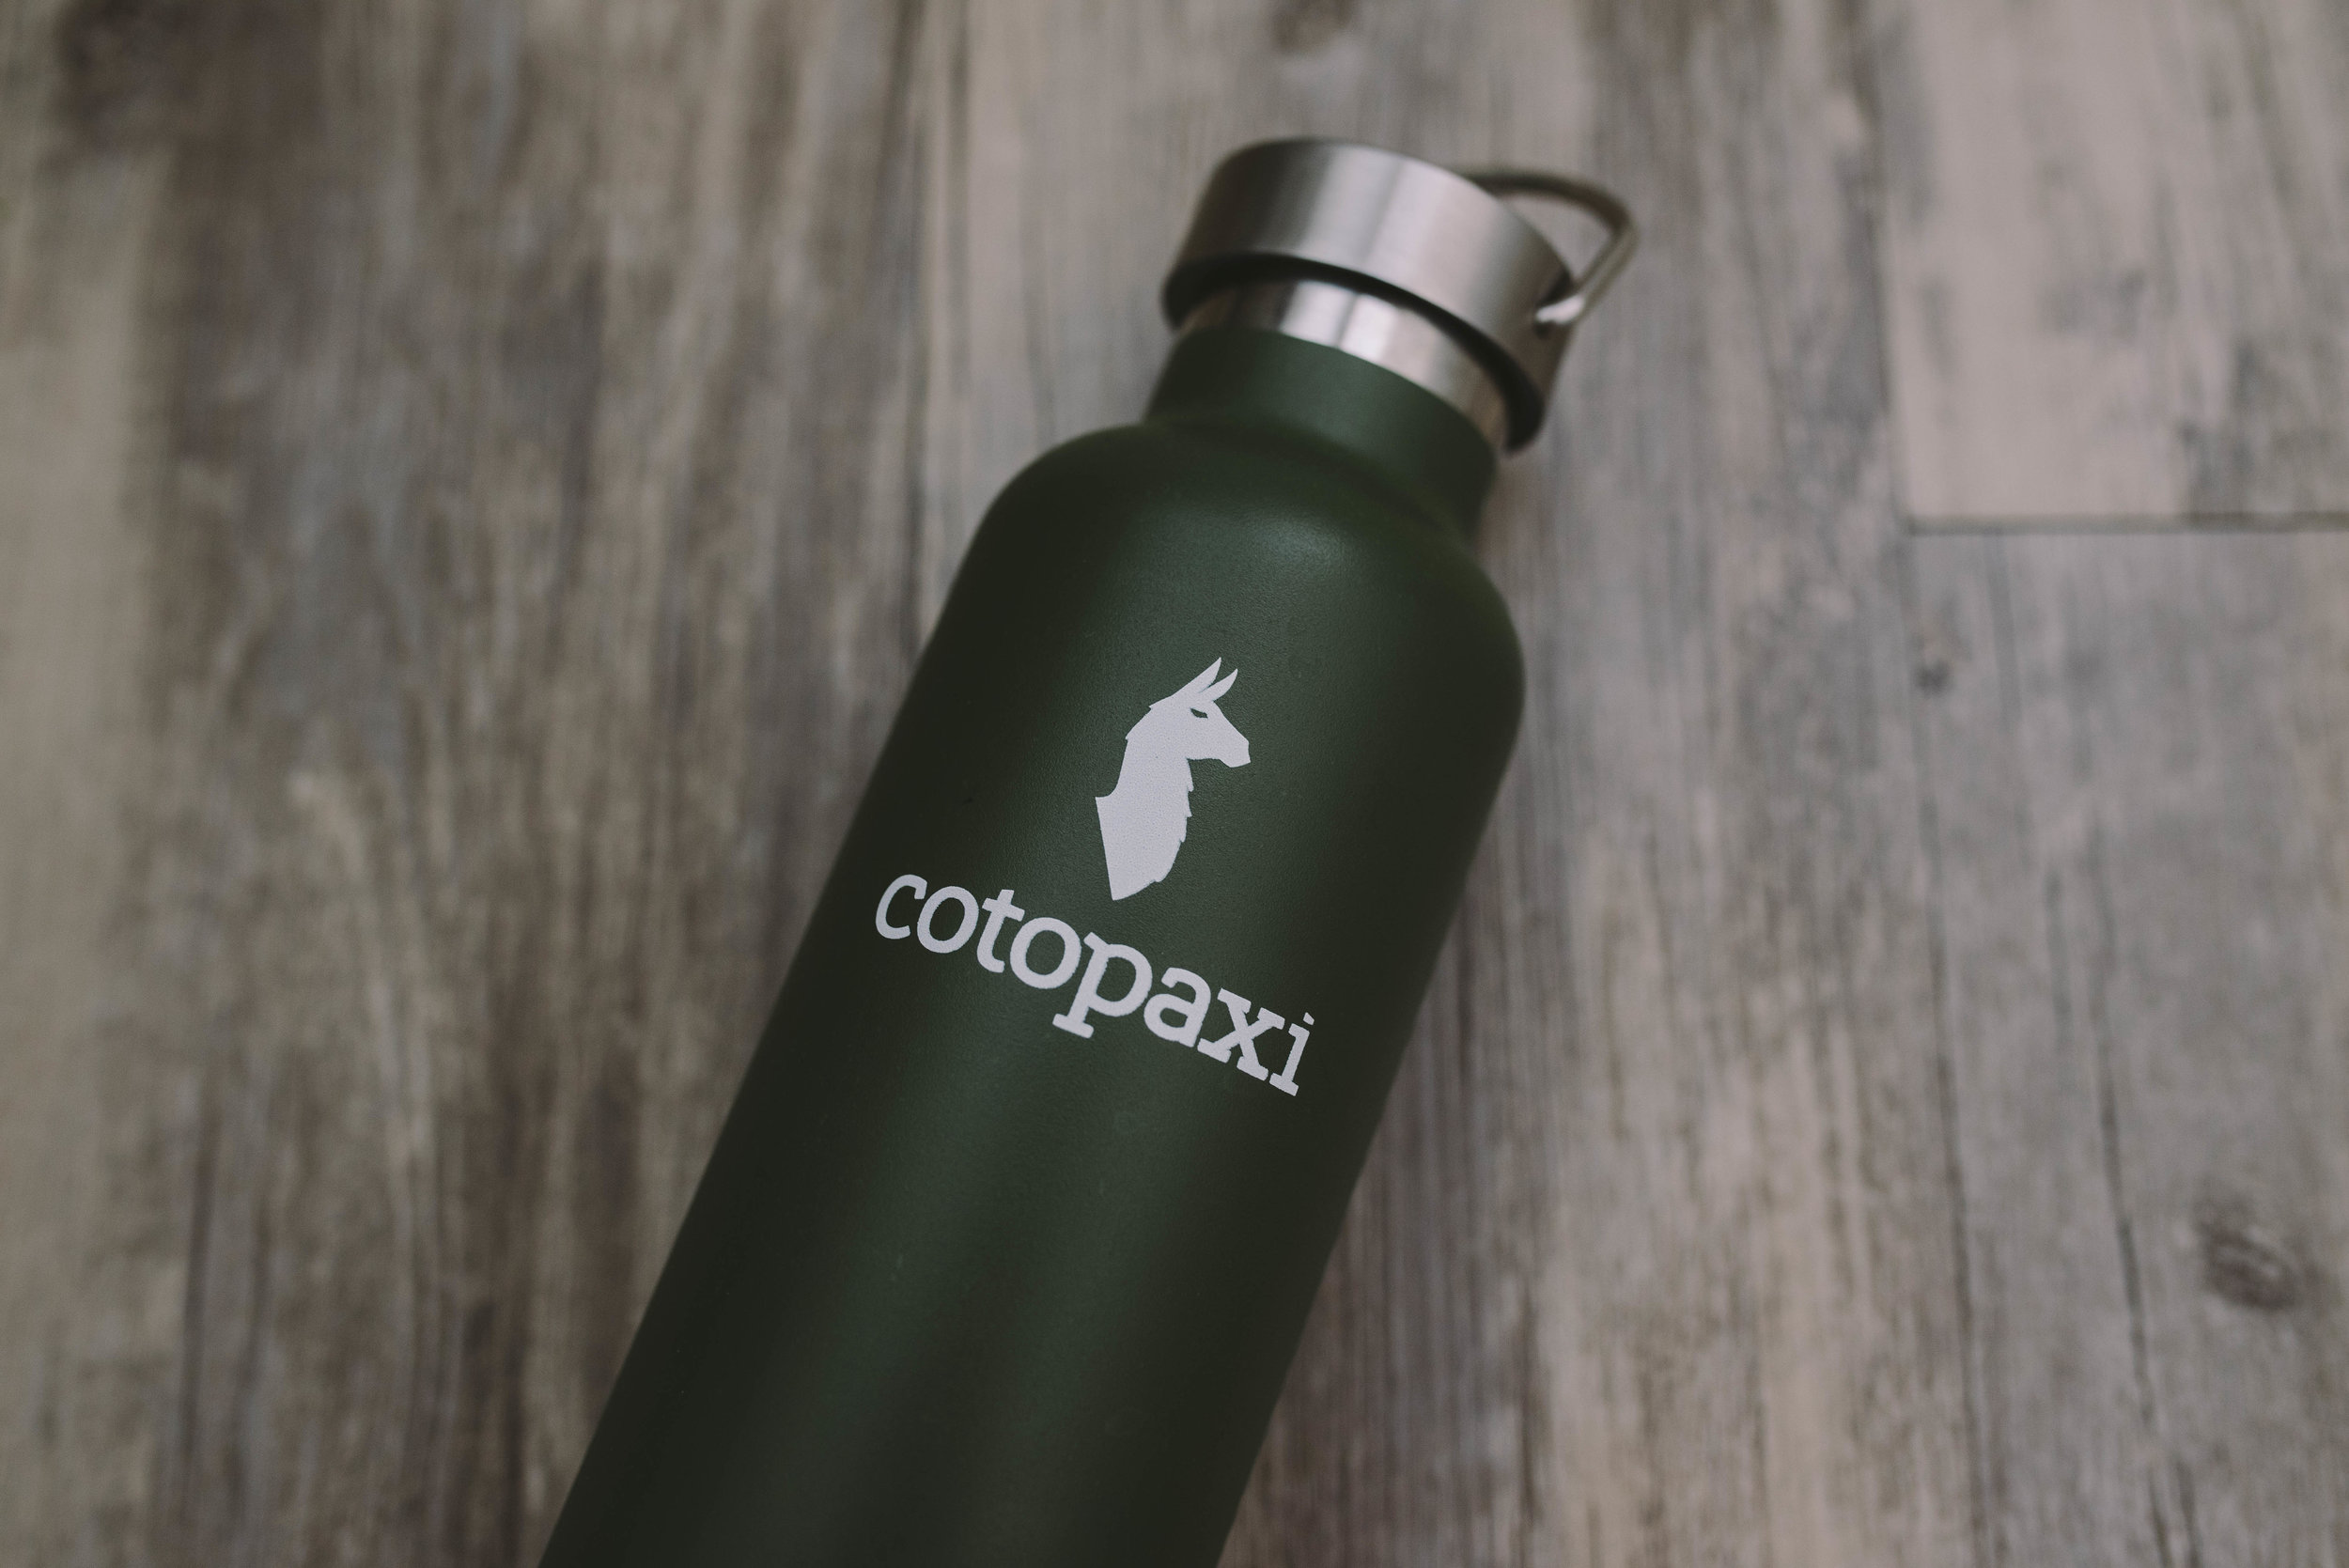 I bought the 750 ml (25 oz) bottle in olive.   Description: Double-walled construction keeps contents hot for 12 hrs. and cold for 24 hrs.  Bottle will not sweat, regardless of temperature of liquid inside bottle  Fits most cup holders and water bottle cages  BPA-free and resistant to bacteria and odors